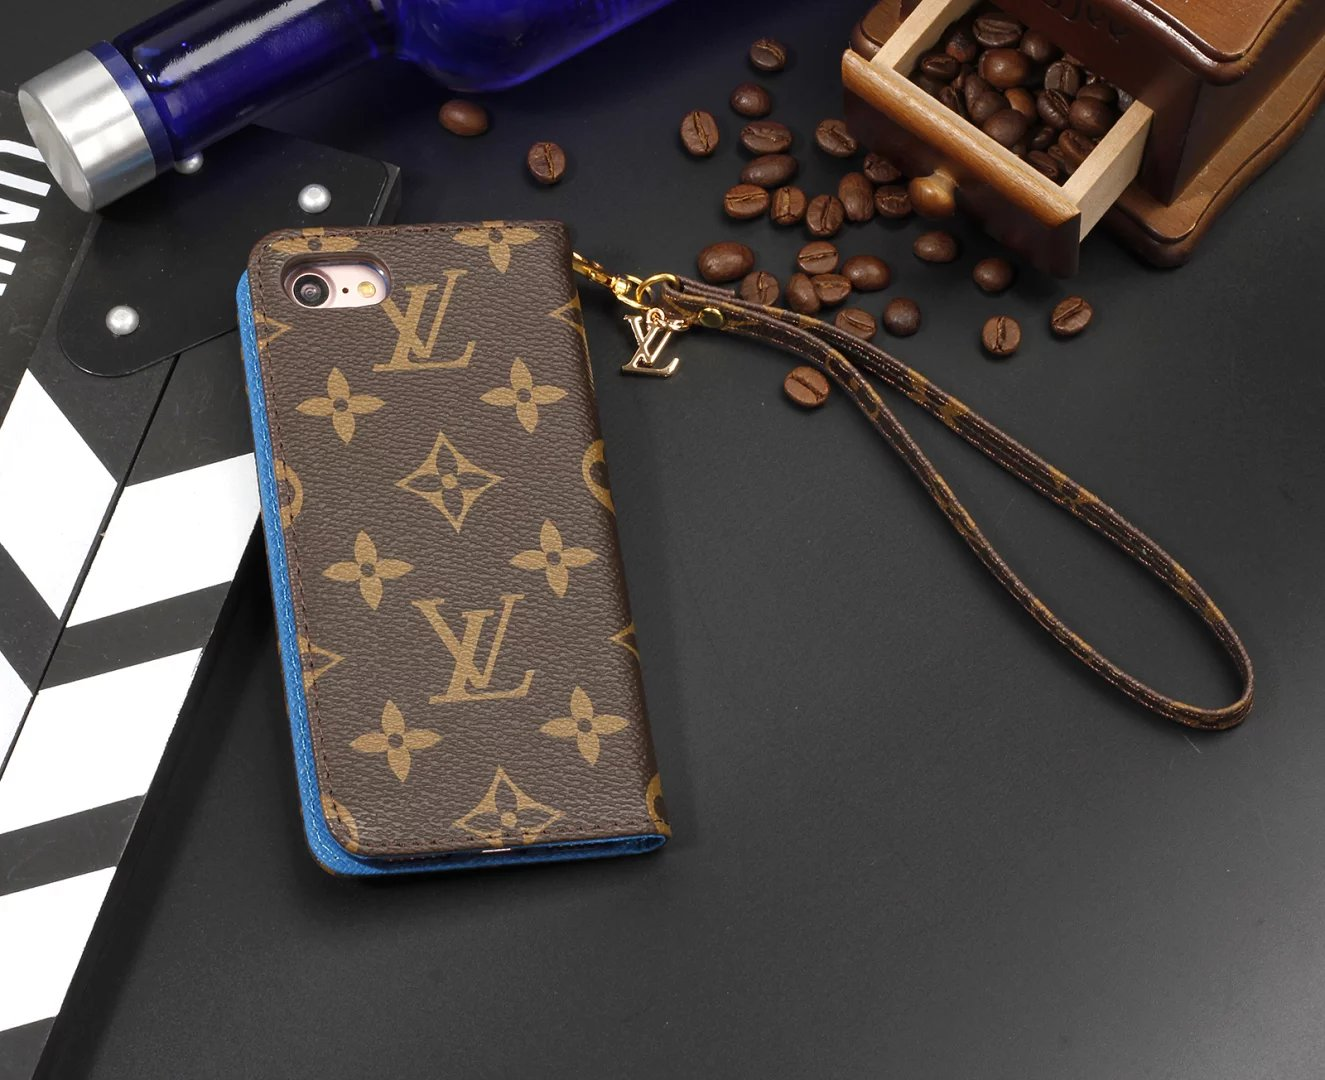 die besten iphone hüllen edle iphone hüllen Louis Vuitton iphone6 hülle das neue iphone 6 iphone s6 hülle designer handyhüllen iphone 6 das neue iphone 6 video apple hülle 6 6 handyhülle